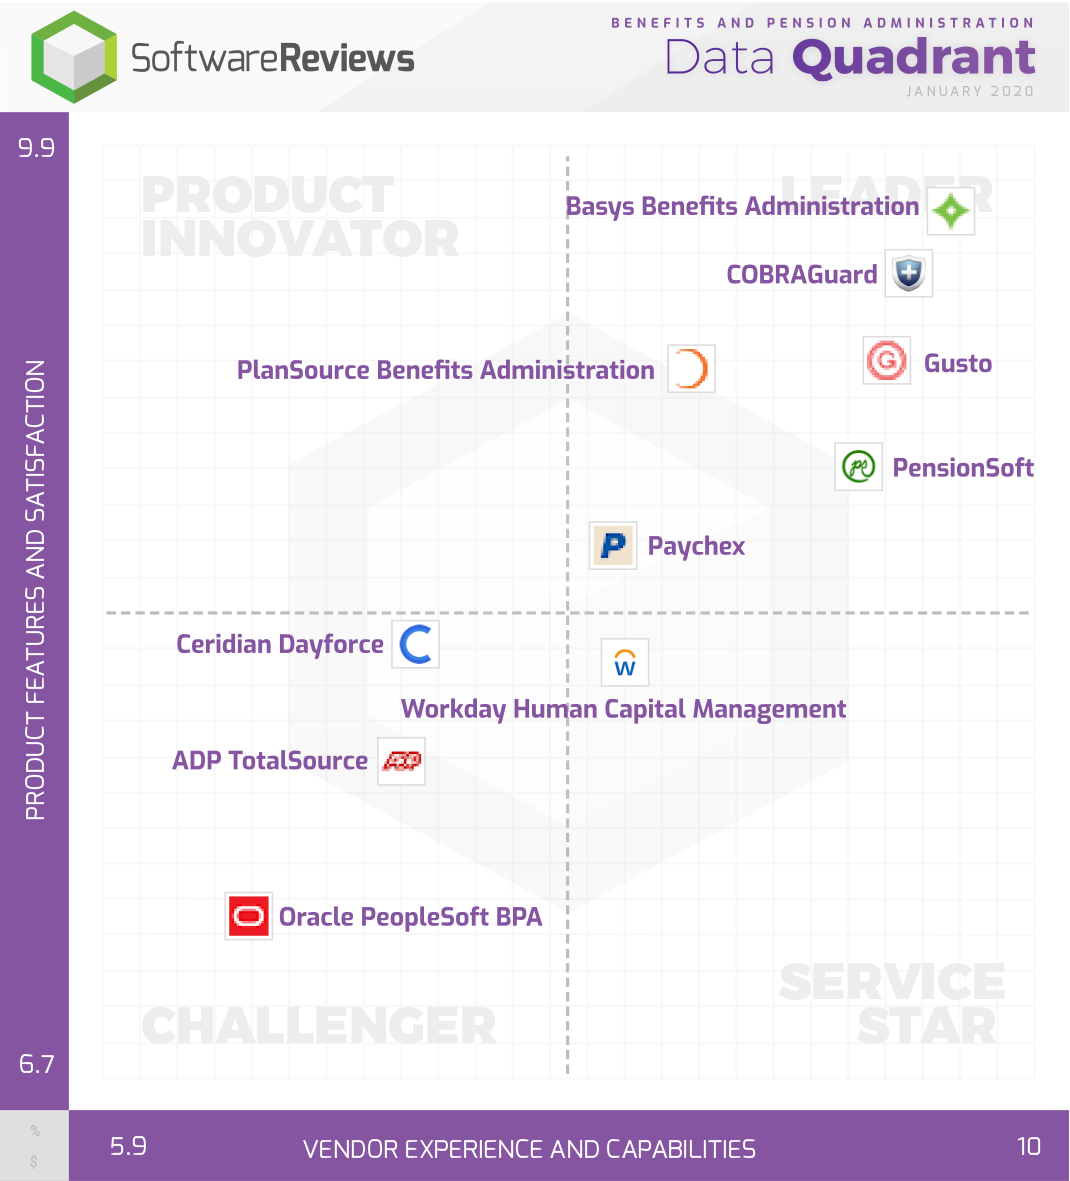 Benefits and Pension Administration Data Quadrant